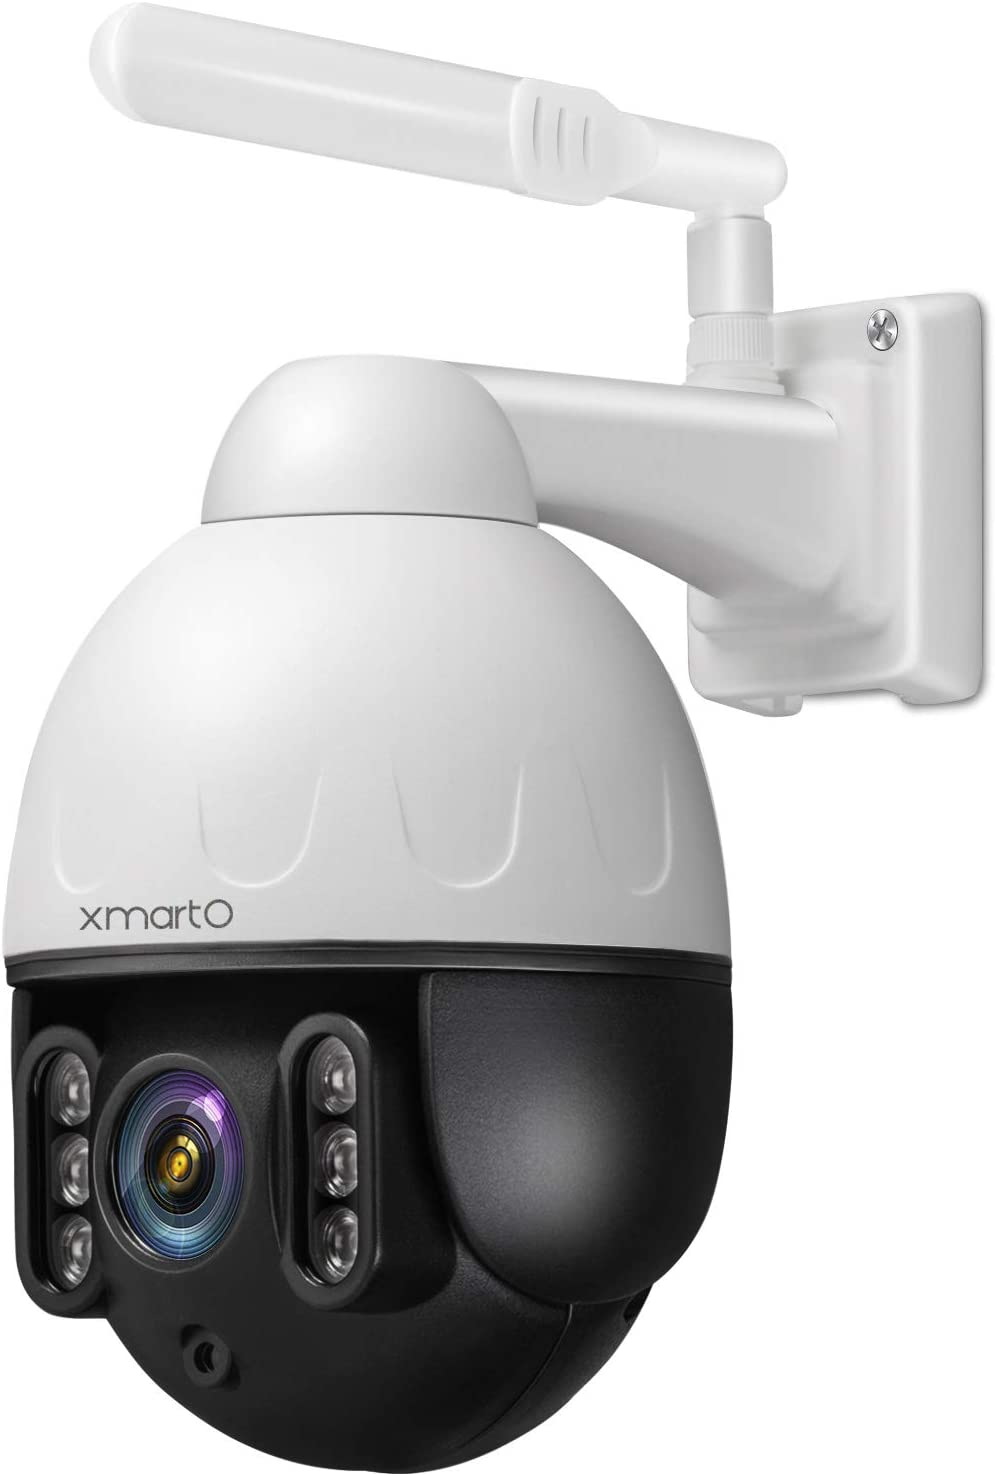 [Floodlight PTZ CAM] XMARTO Security Camera Outdoor, 1080p WiFi PTZ Wireless Camera for Home Security, Pan Tilt Zoom, 2-Way Audio, Motion Detection Alert & Siren, IP66, (Add-on to NVR or standalone)